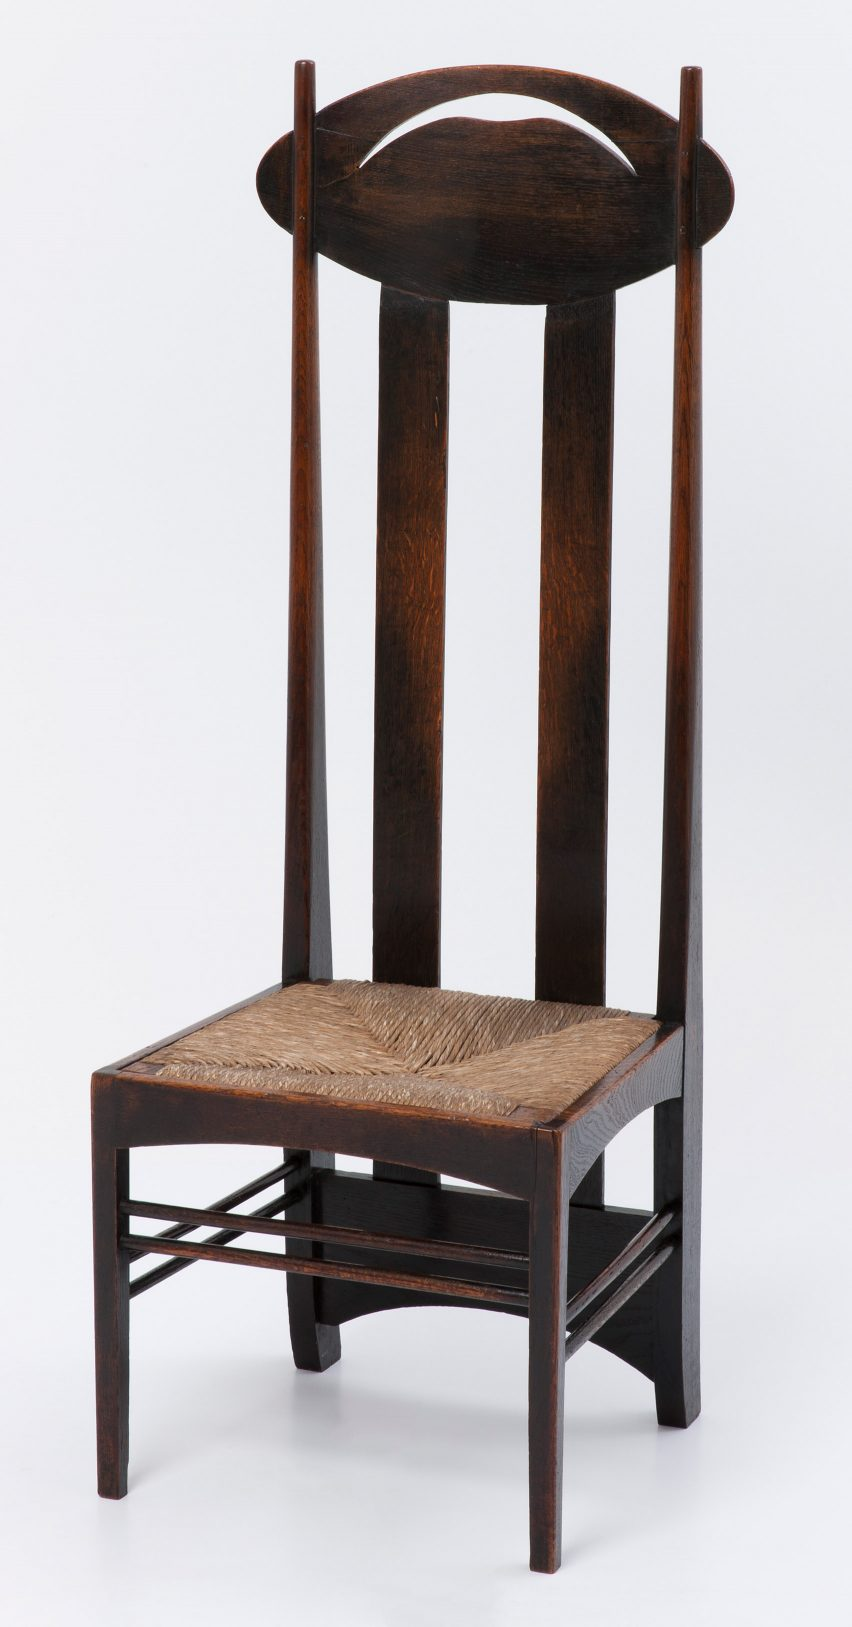 Argyle chair by Charles Rennie Mackintosh